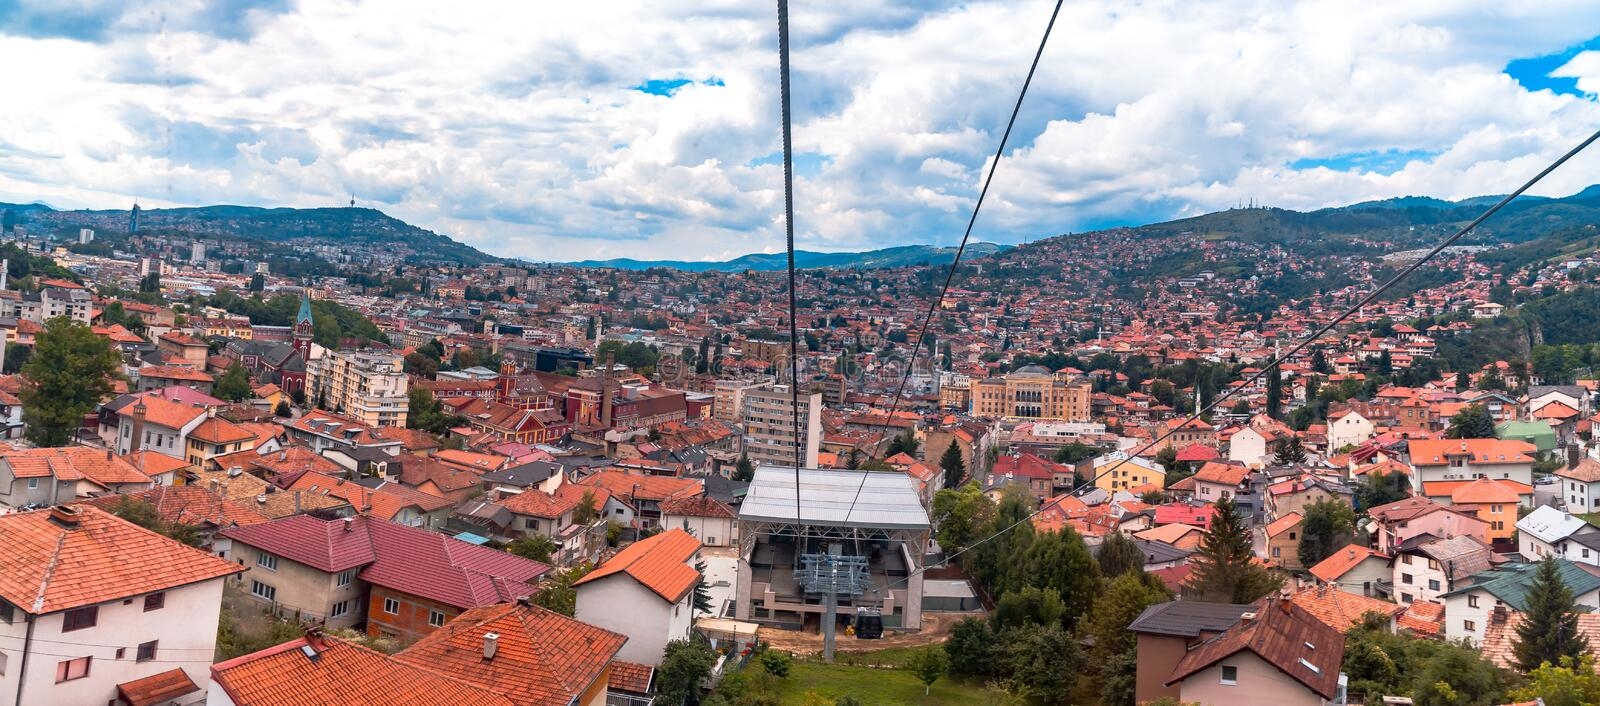 Cable Car Lift from City Center to Trebevic. Cable car lift from the center of Sarajevo to Trebevic Mountain in Bosnia and Herzegovina stock photography